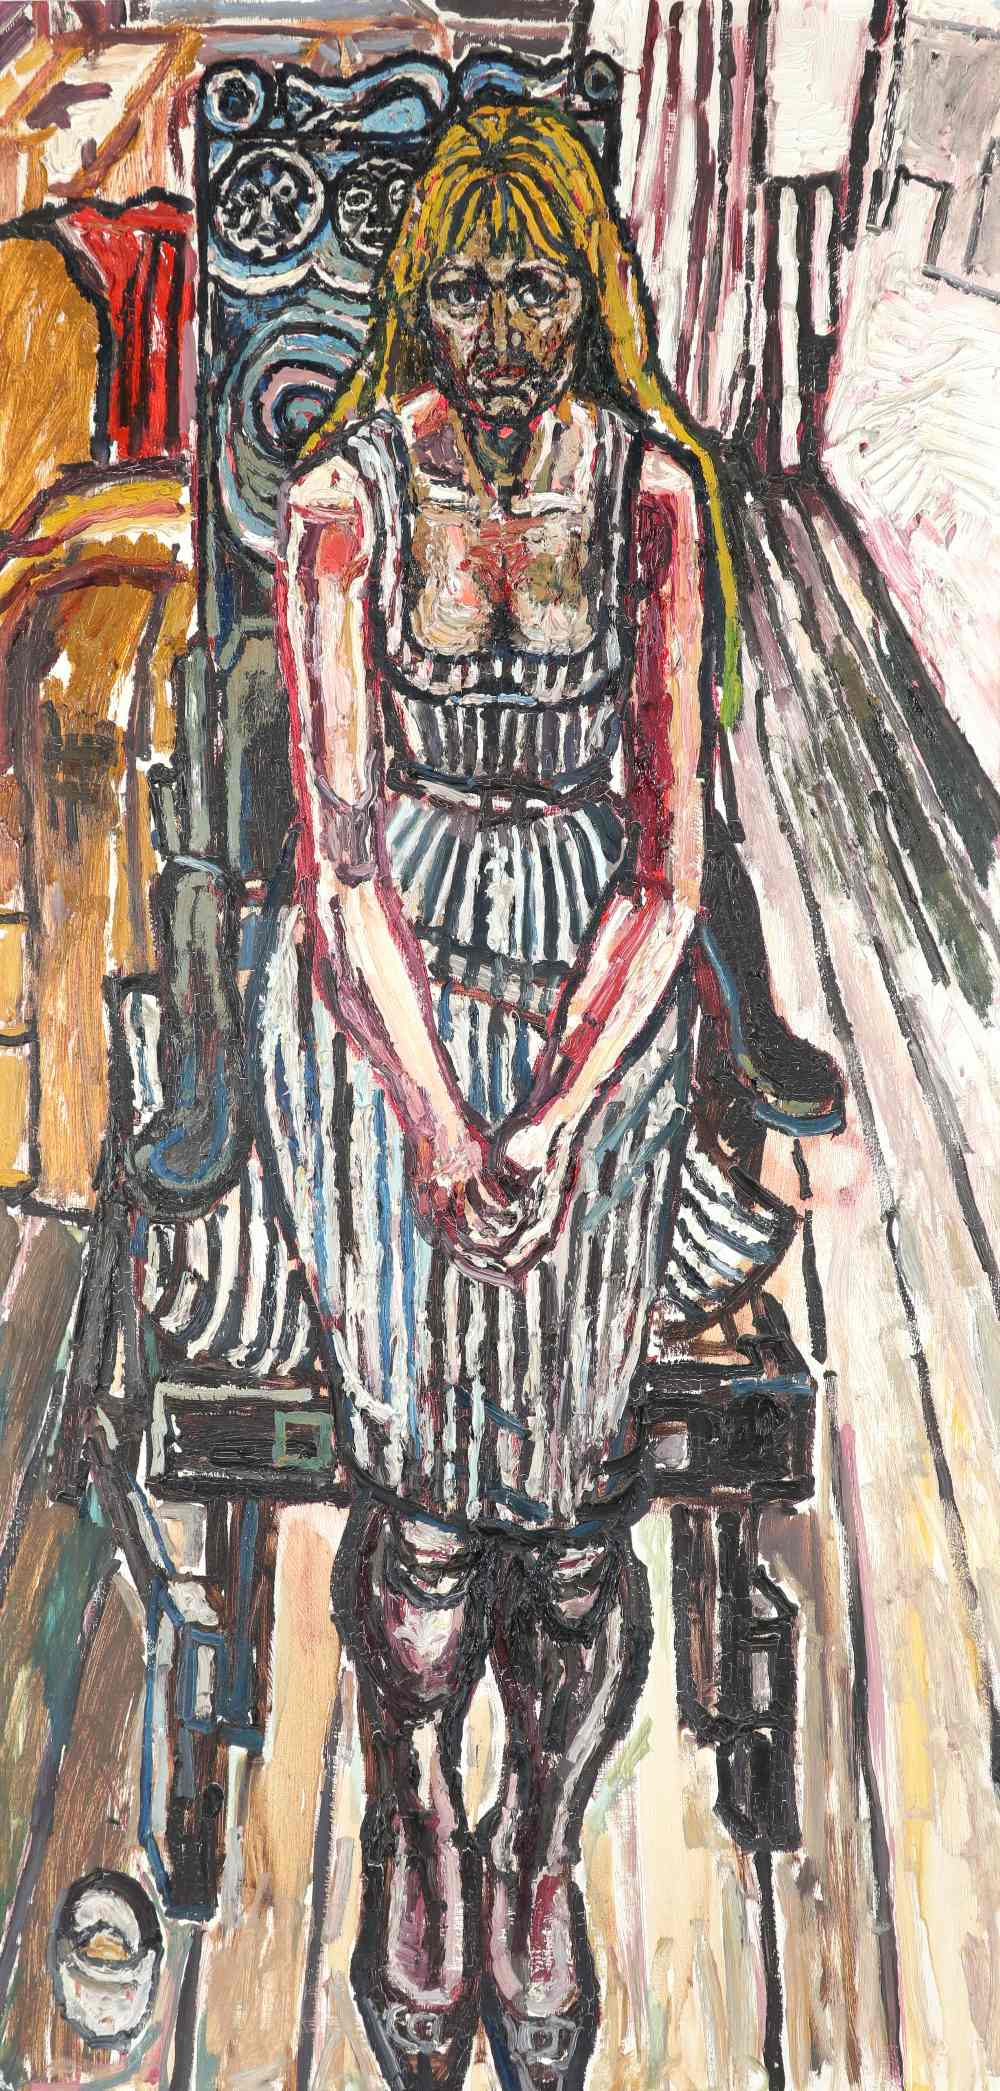 ‡John Bratby RA (1928-1992) Girl in a carved chair Signed BRATBY (lower left) Oil on board, c.